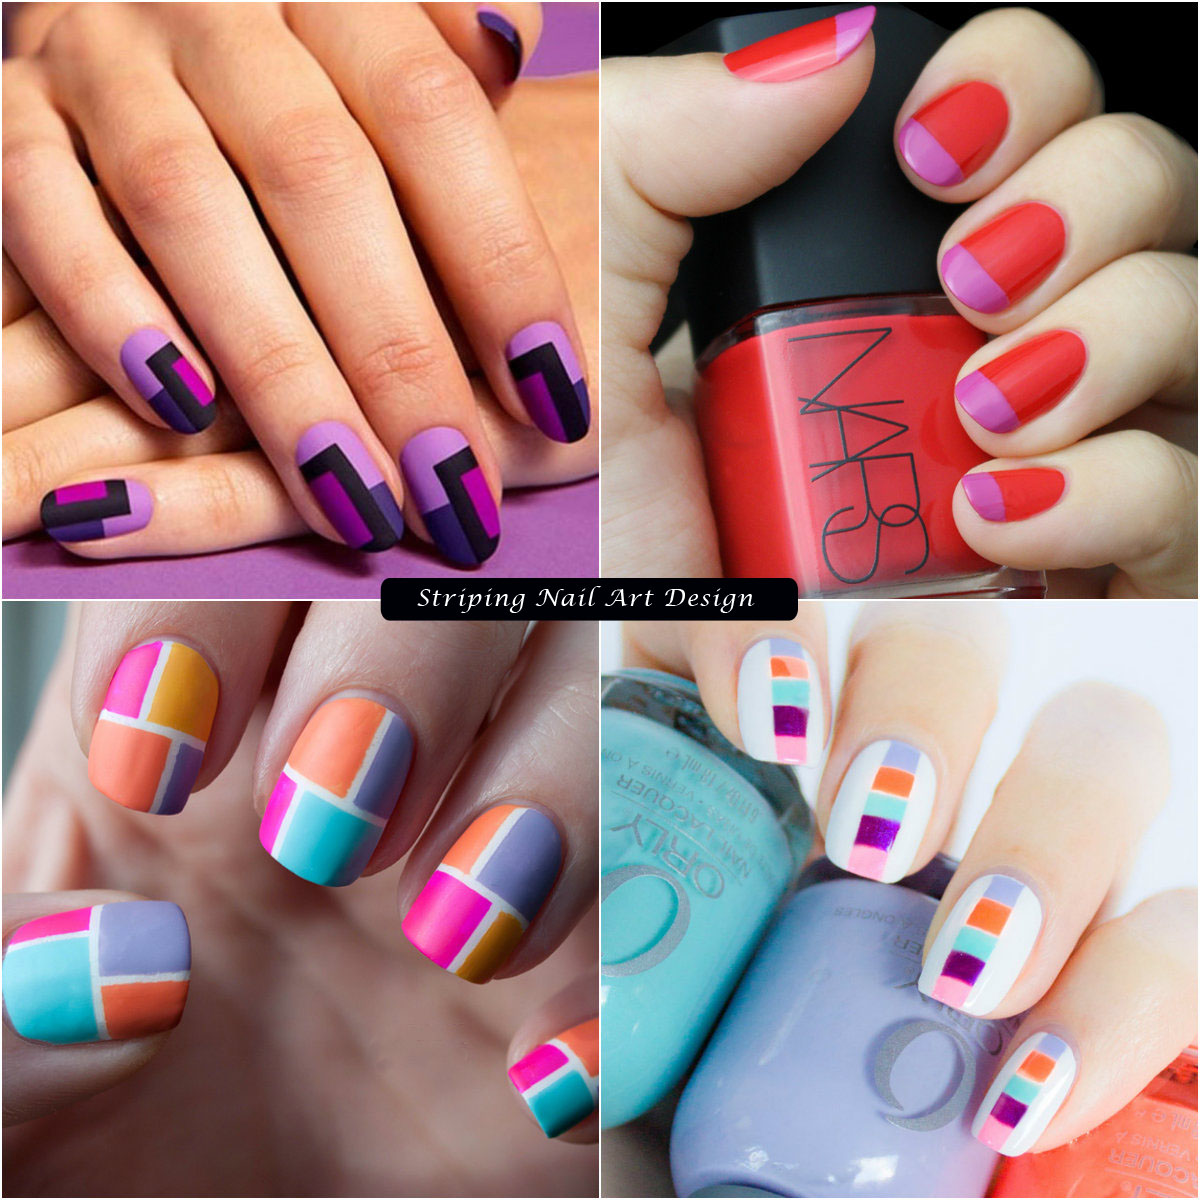 Color Blocked Striping nail art design